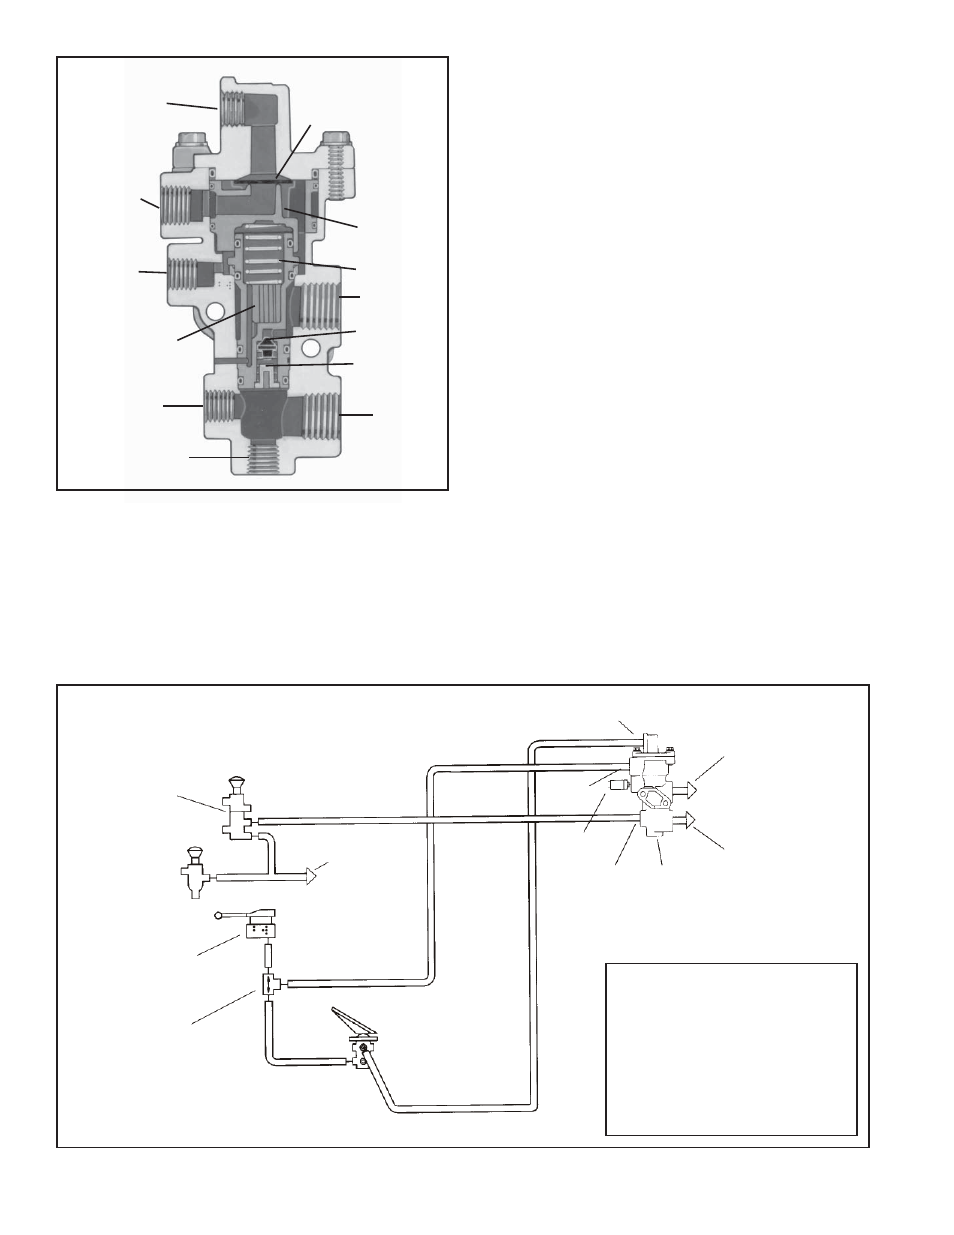 Operation Bendix Commercial Vehicle Systems Tp 3dc Tractor Air Brakes Schematic Protection Vlv 6 07 User Manual Page 2 8